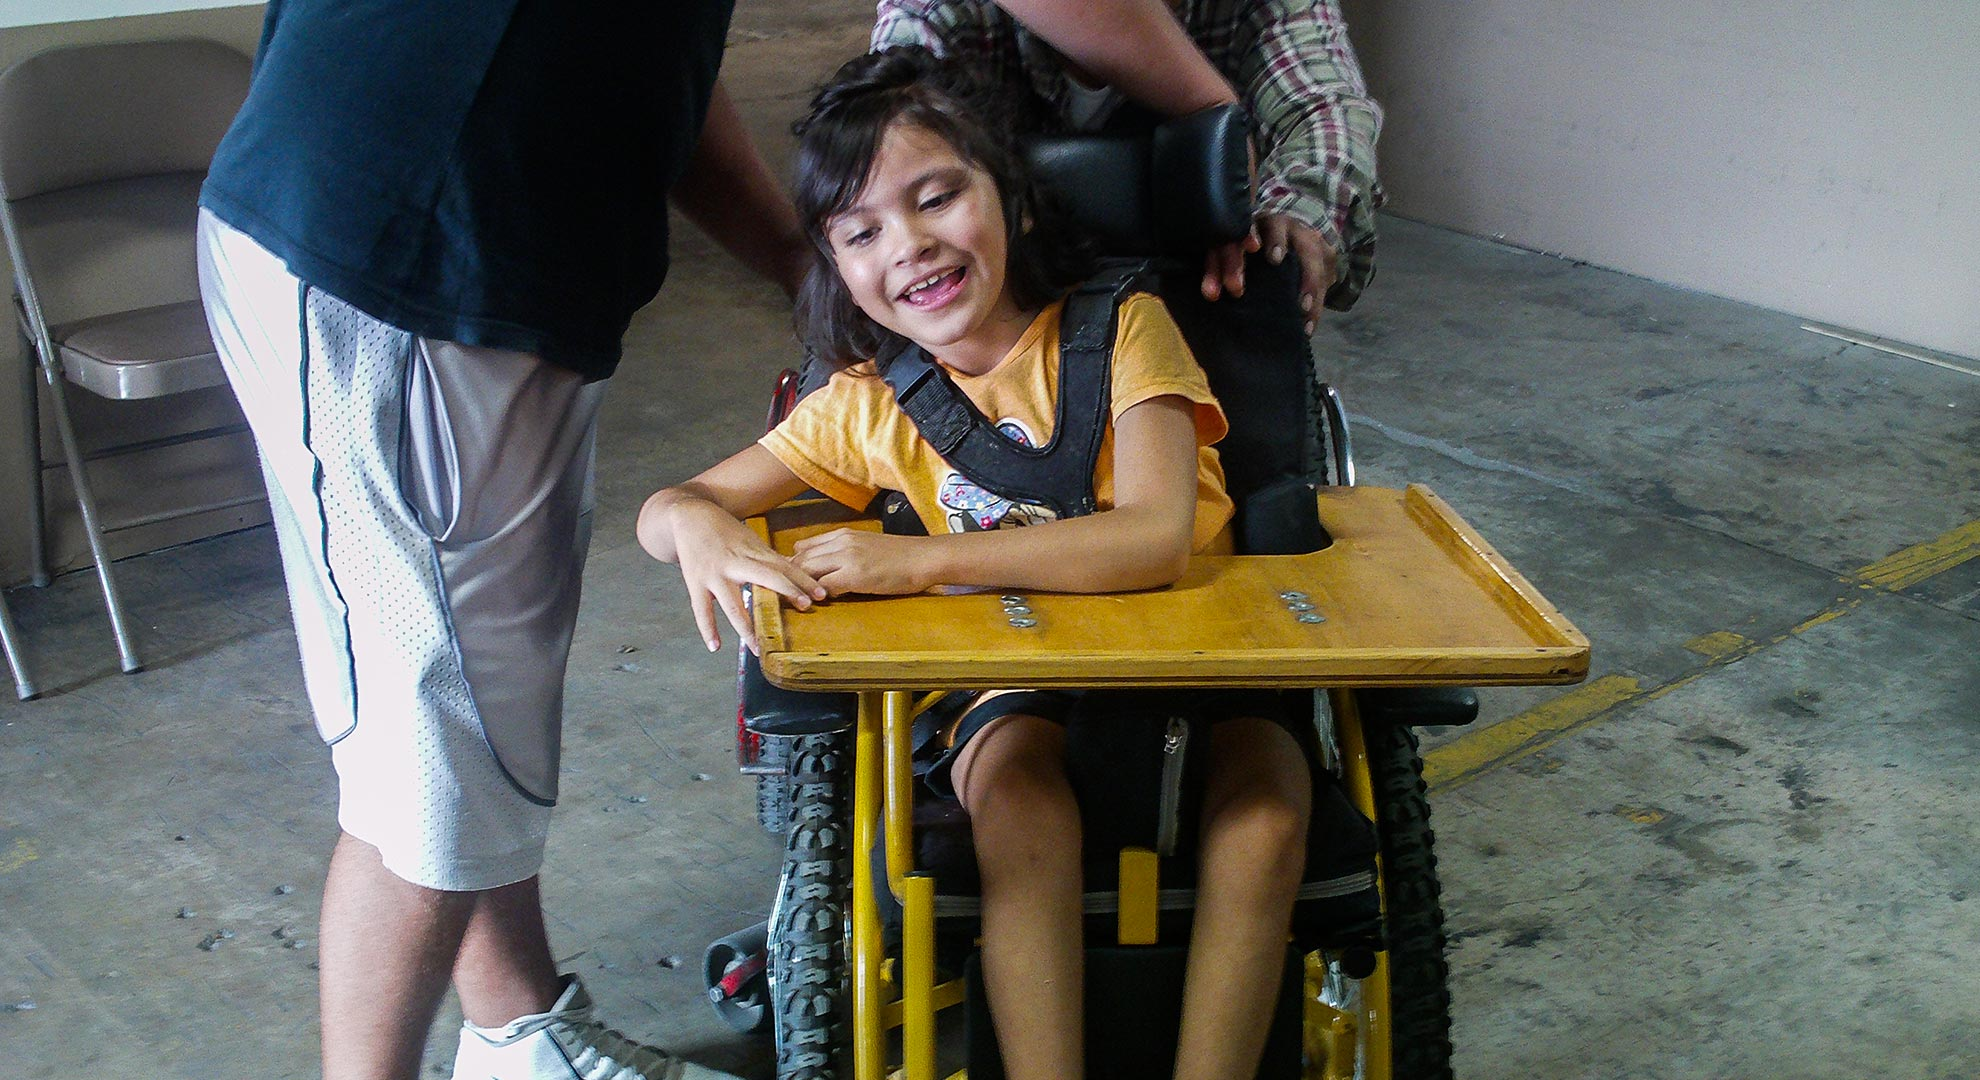 A child gets her first wheelchair built by ARSOBO, a nonprofit in Nogales, Sonora.